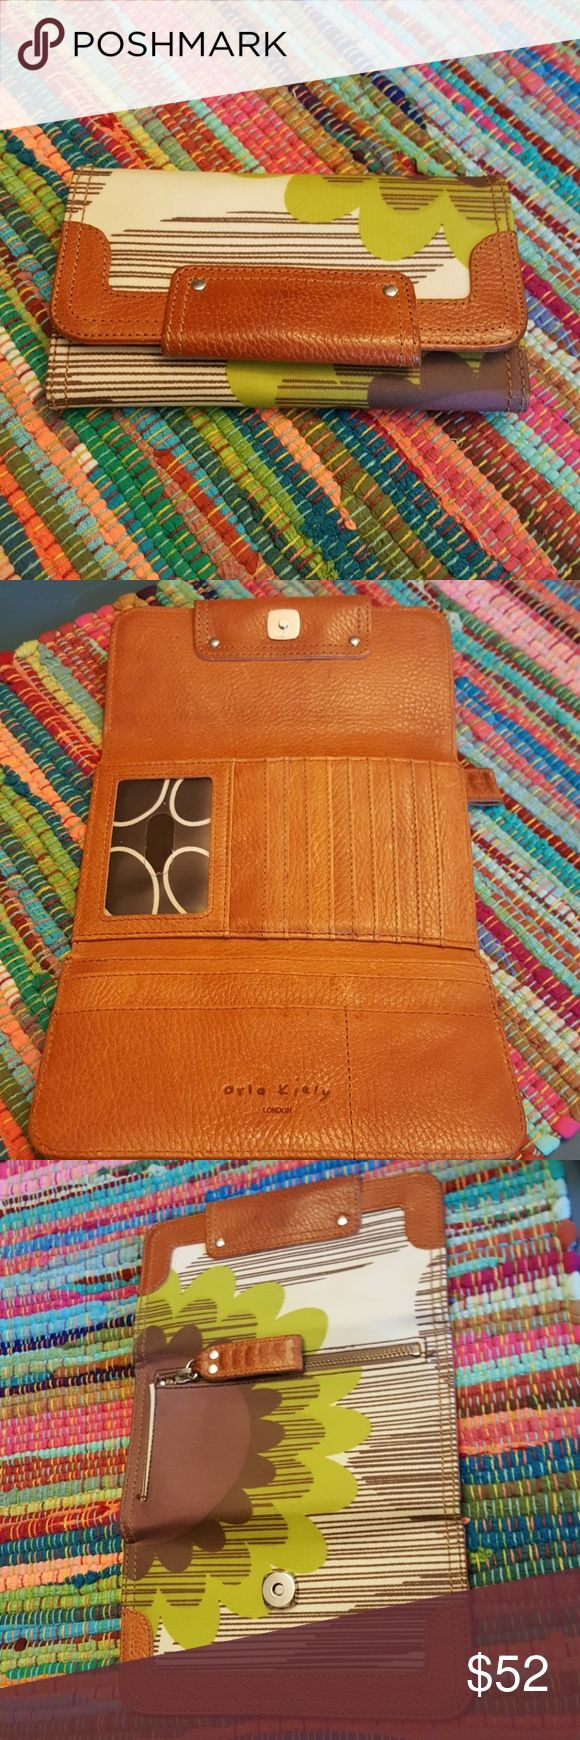 "RARE ORLA KIELY WALLET Leather brown purple green pattern.  Clutch listed separately in another listing of mine.  Small signs of use otherwise in great shape.8×4"" Anthropologie Orla Kiely Bags Wallets"